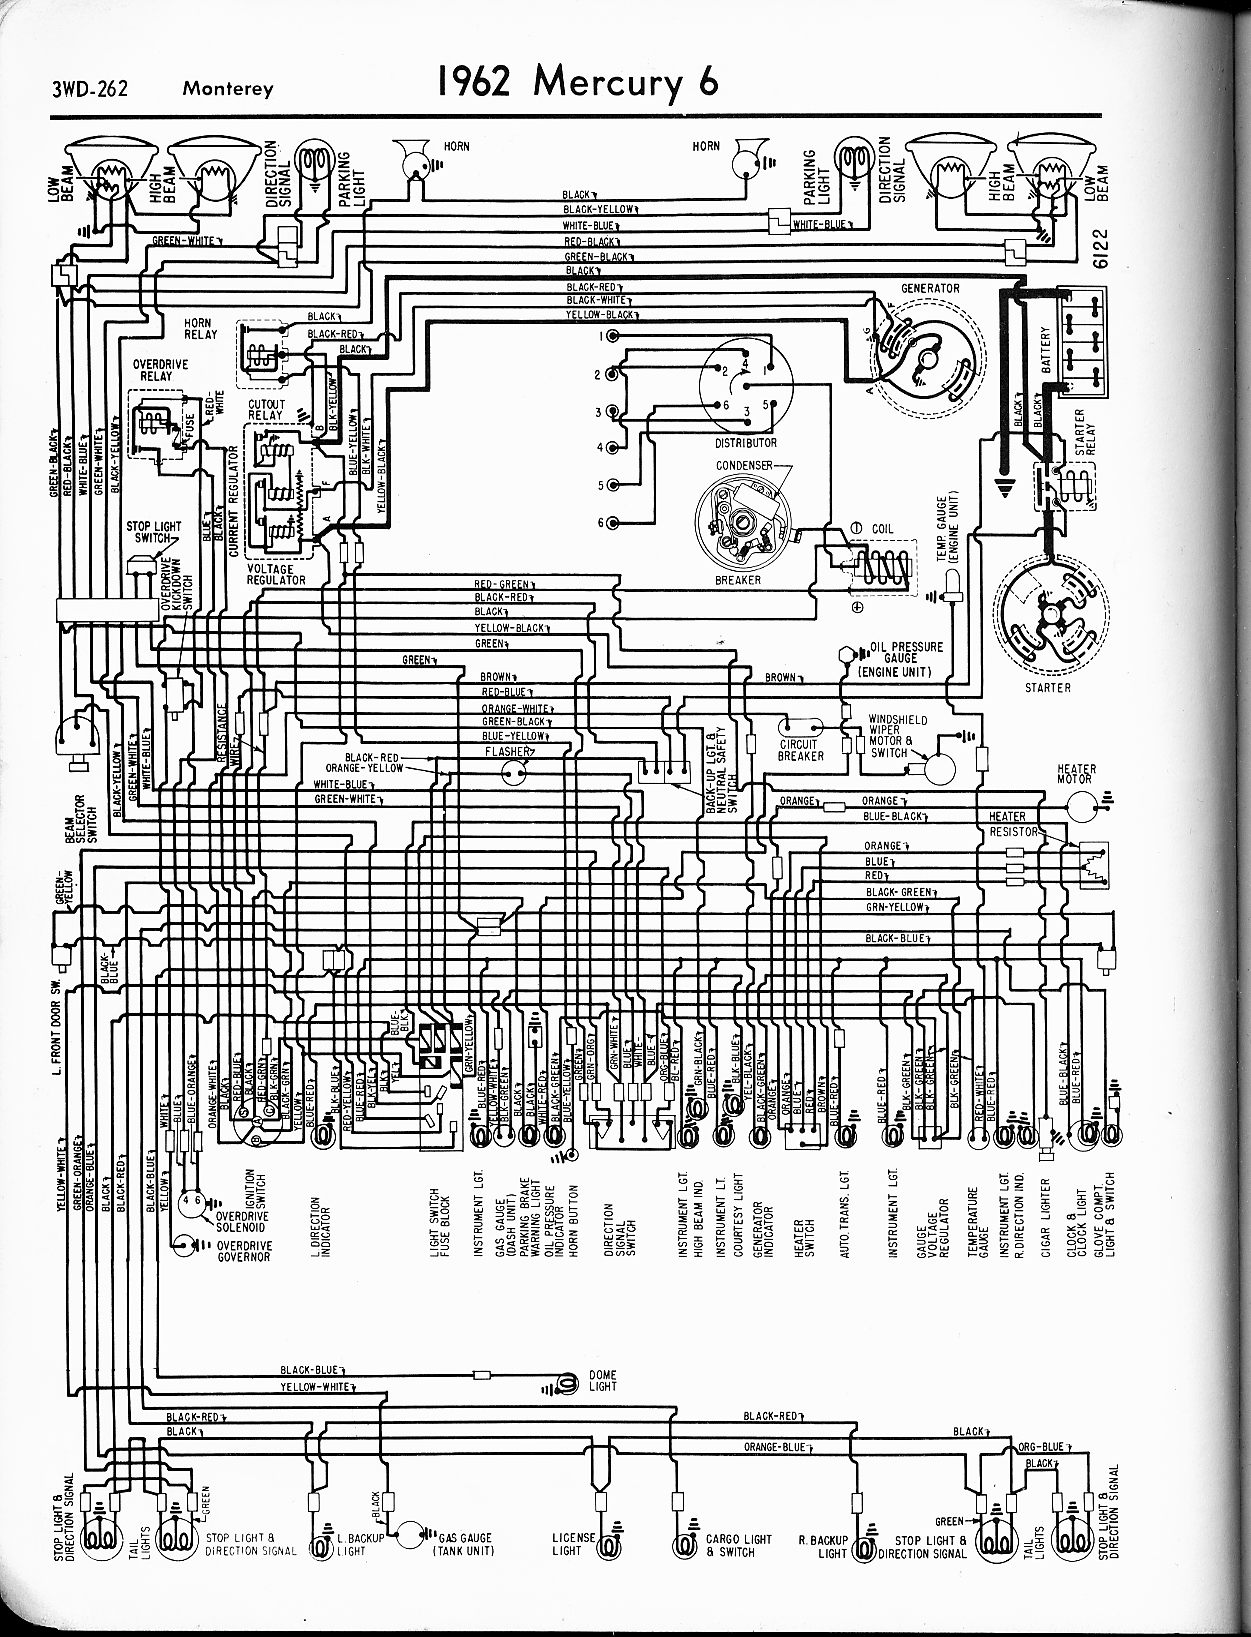 1972 Mustang Instrument Cluster Wiring Diagram - Block And Schematic ...